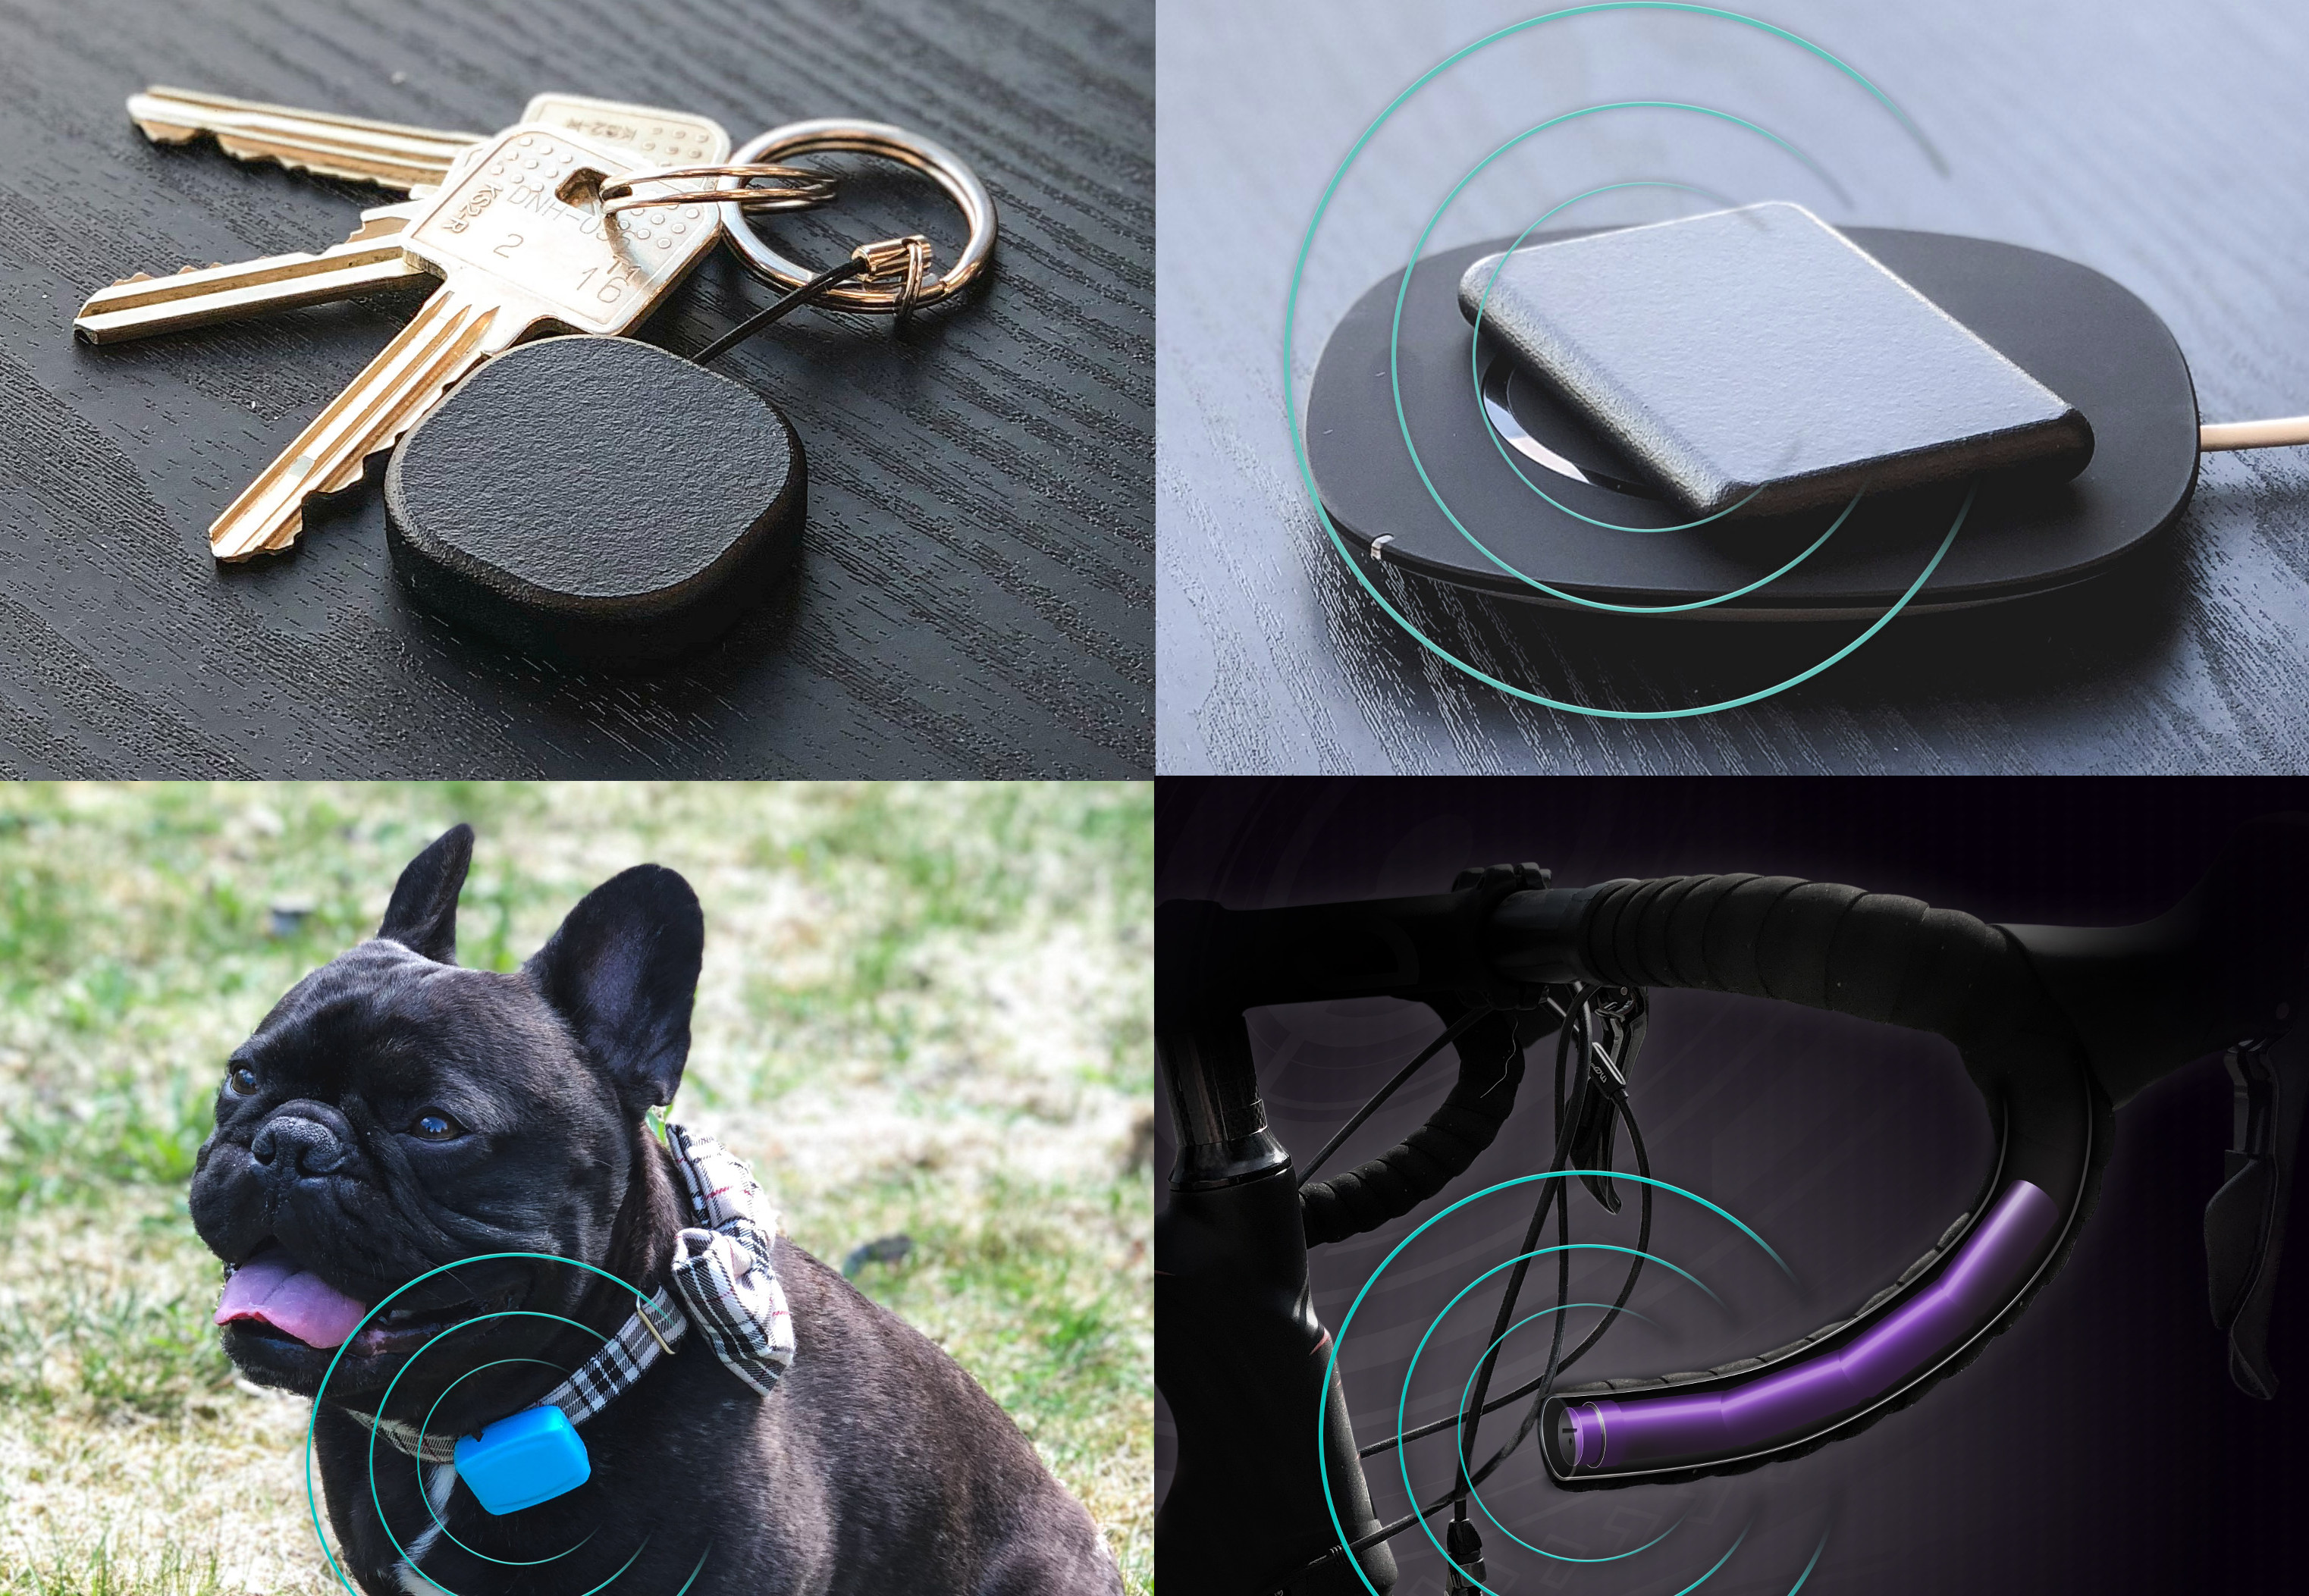 Tail it is a Family of WiFi & Cellular GPS Trackers for Things, Pets